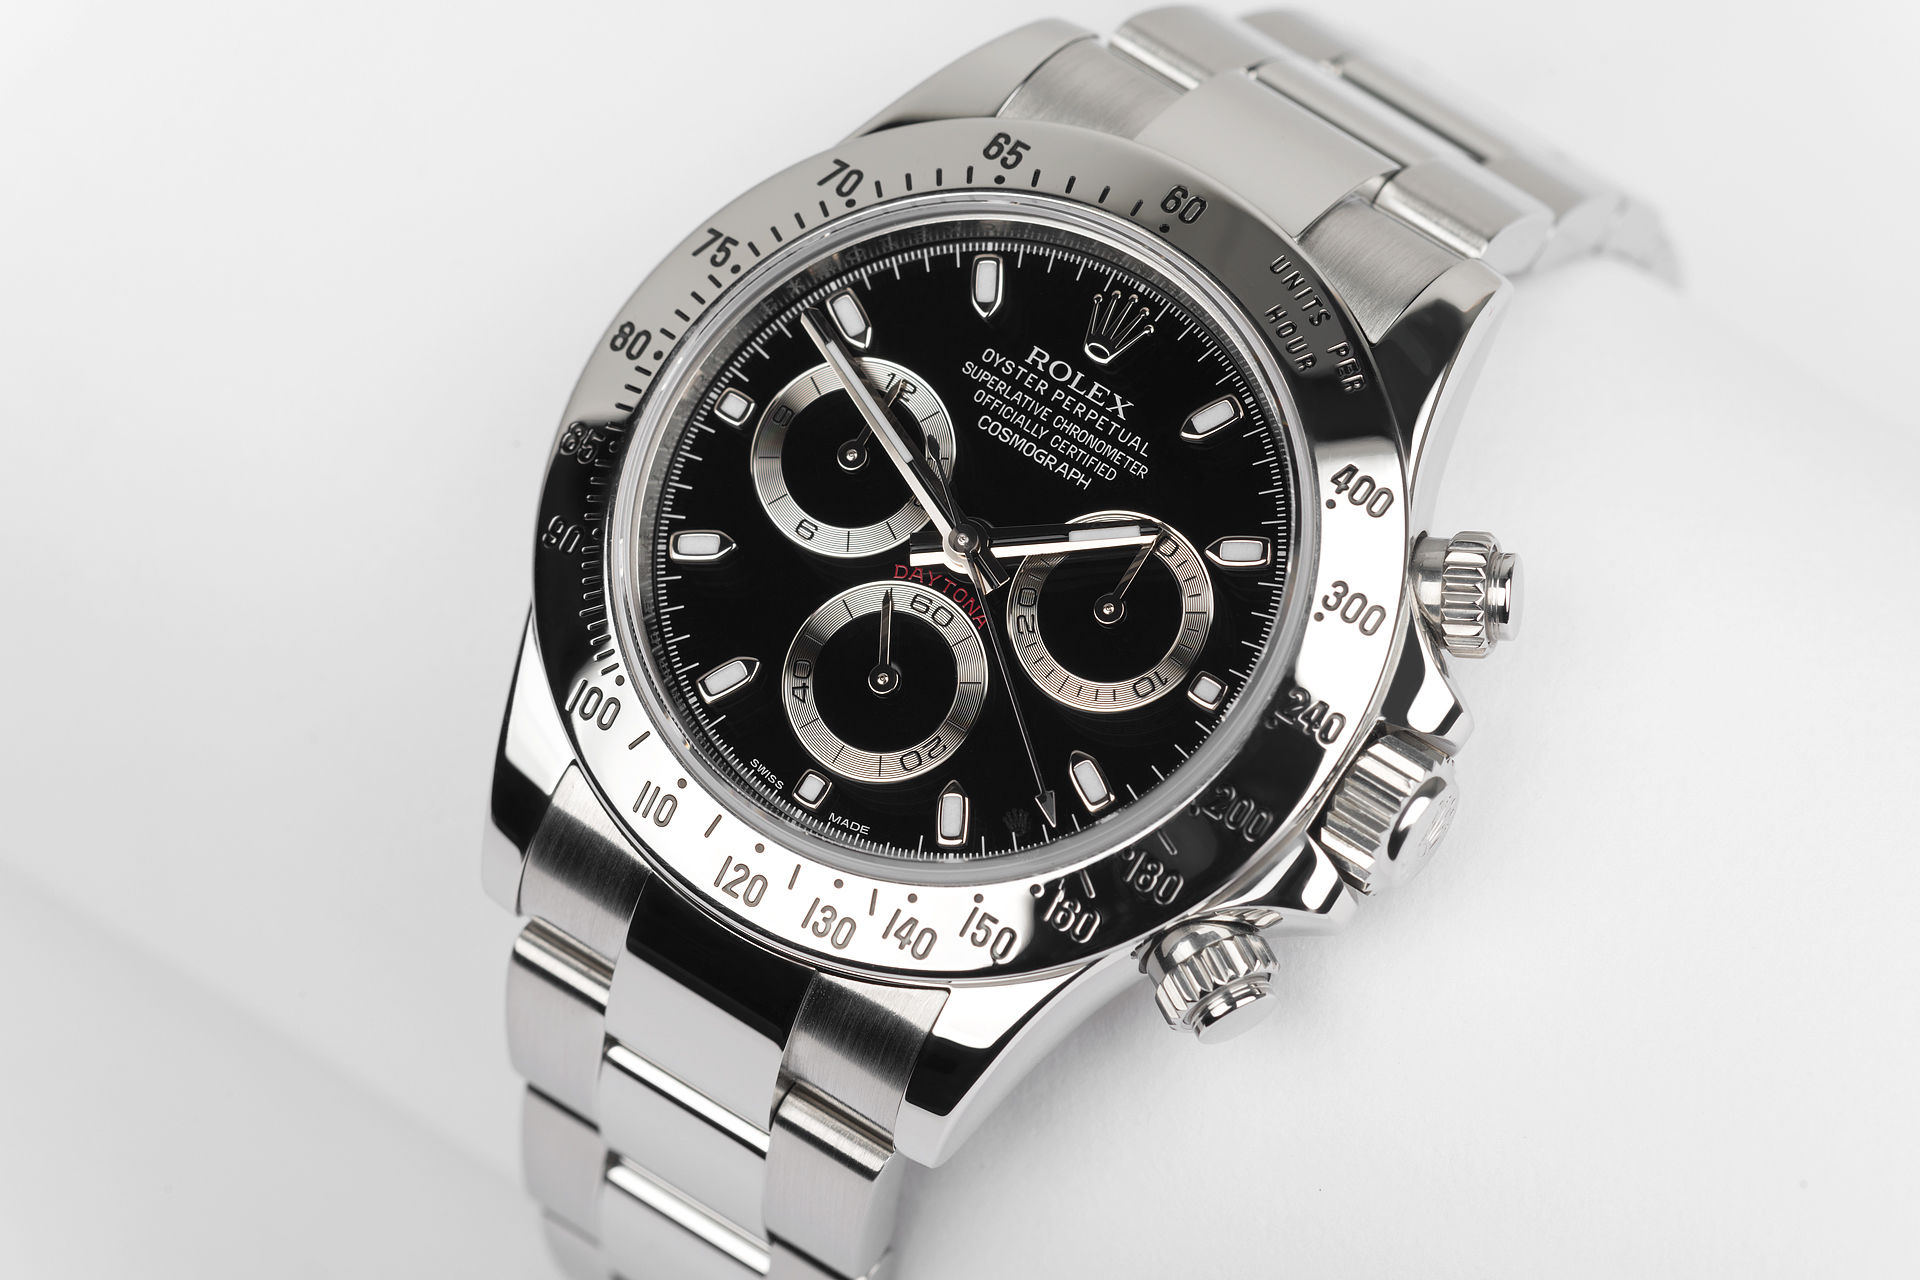 ref 116520 | Full Set 'Five Year Warranty' | Rolex Cosmograph Daytona